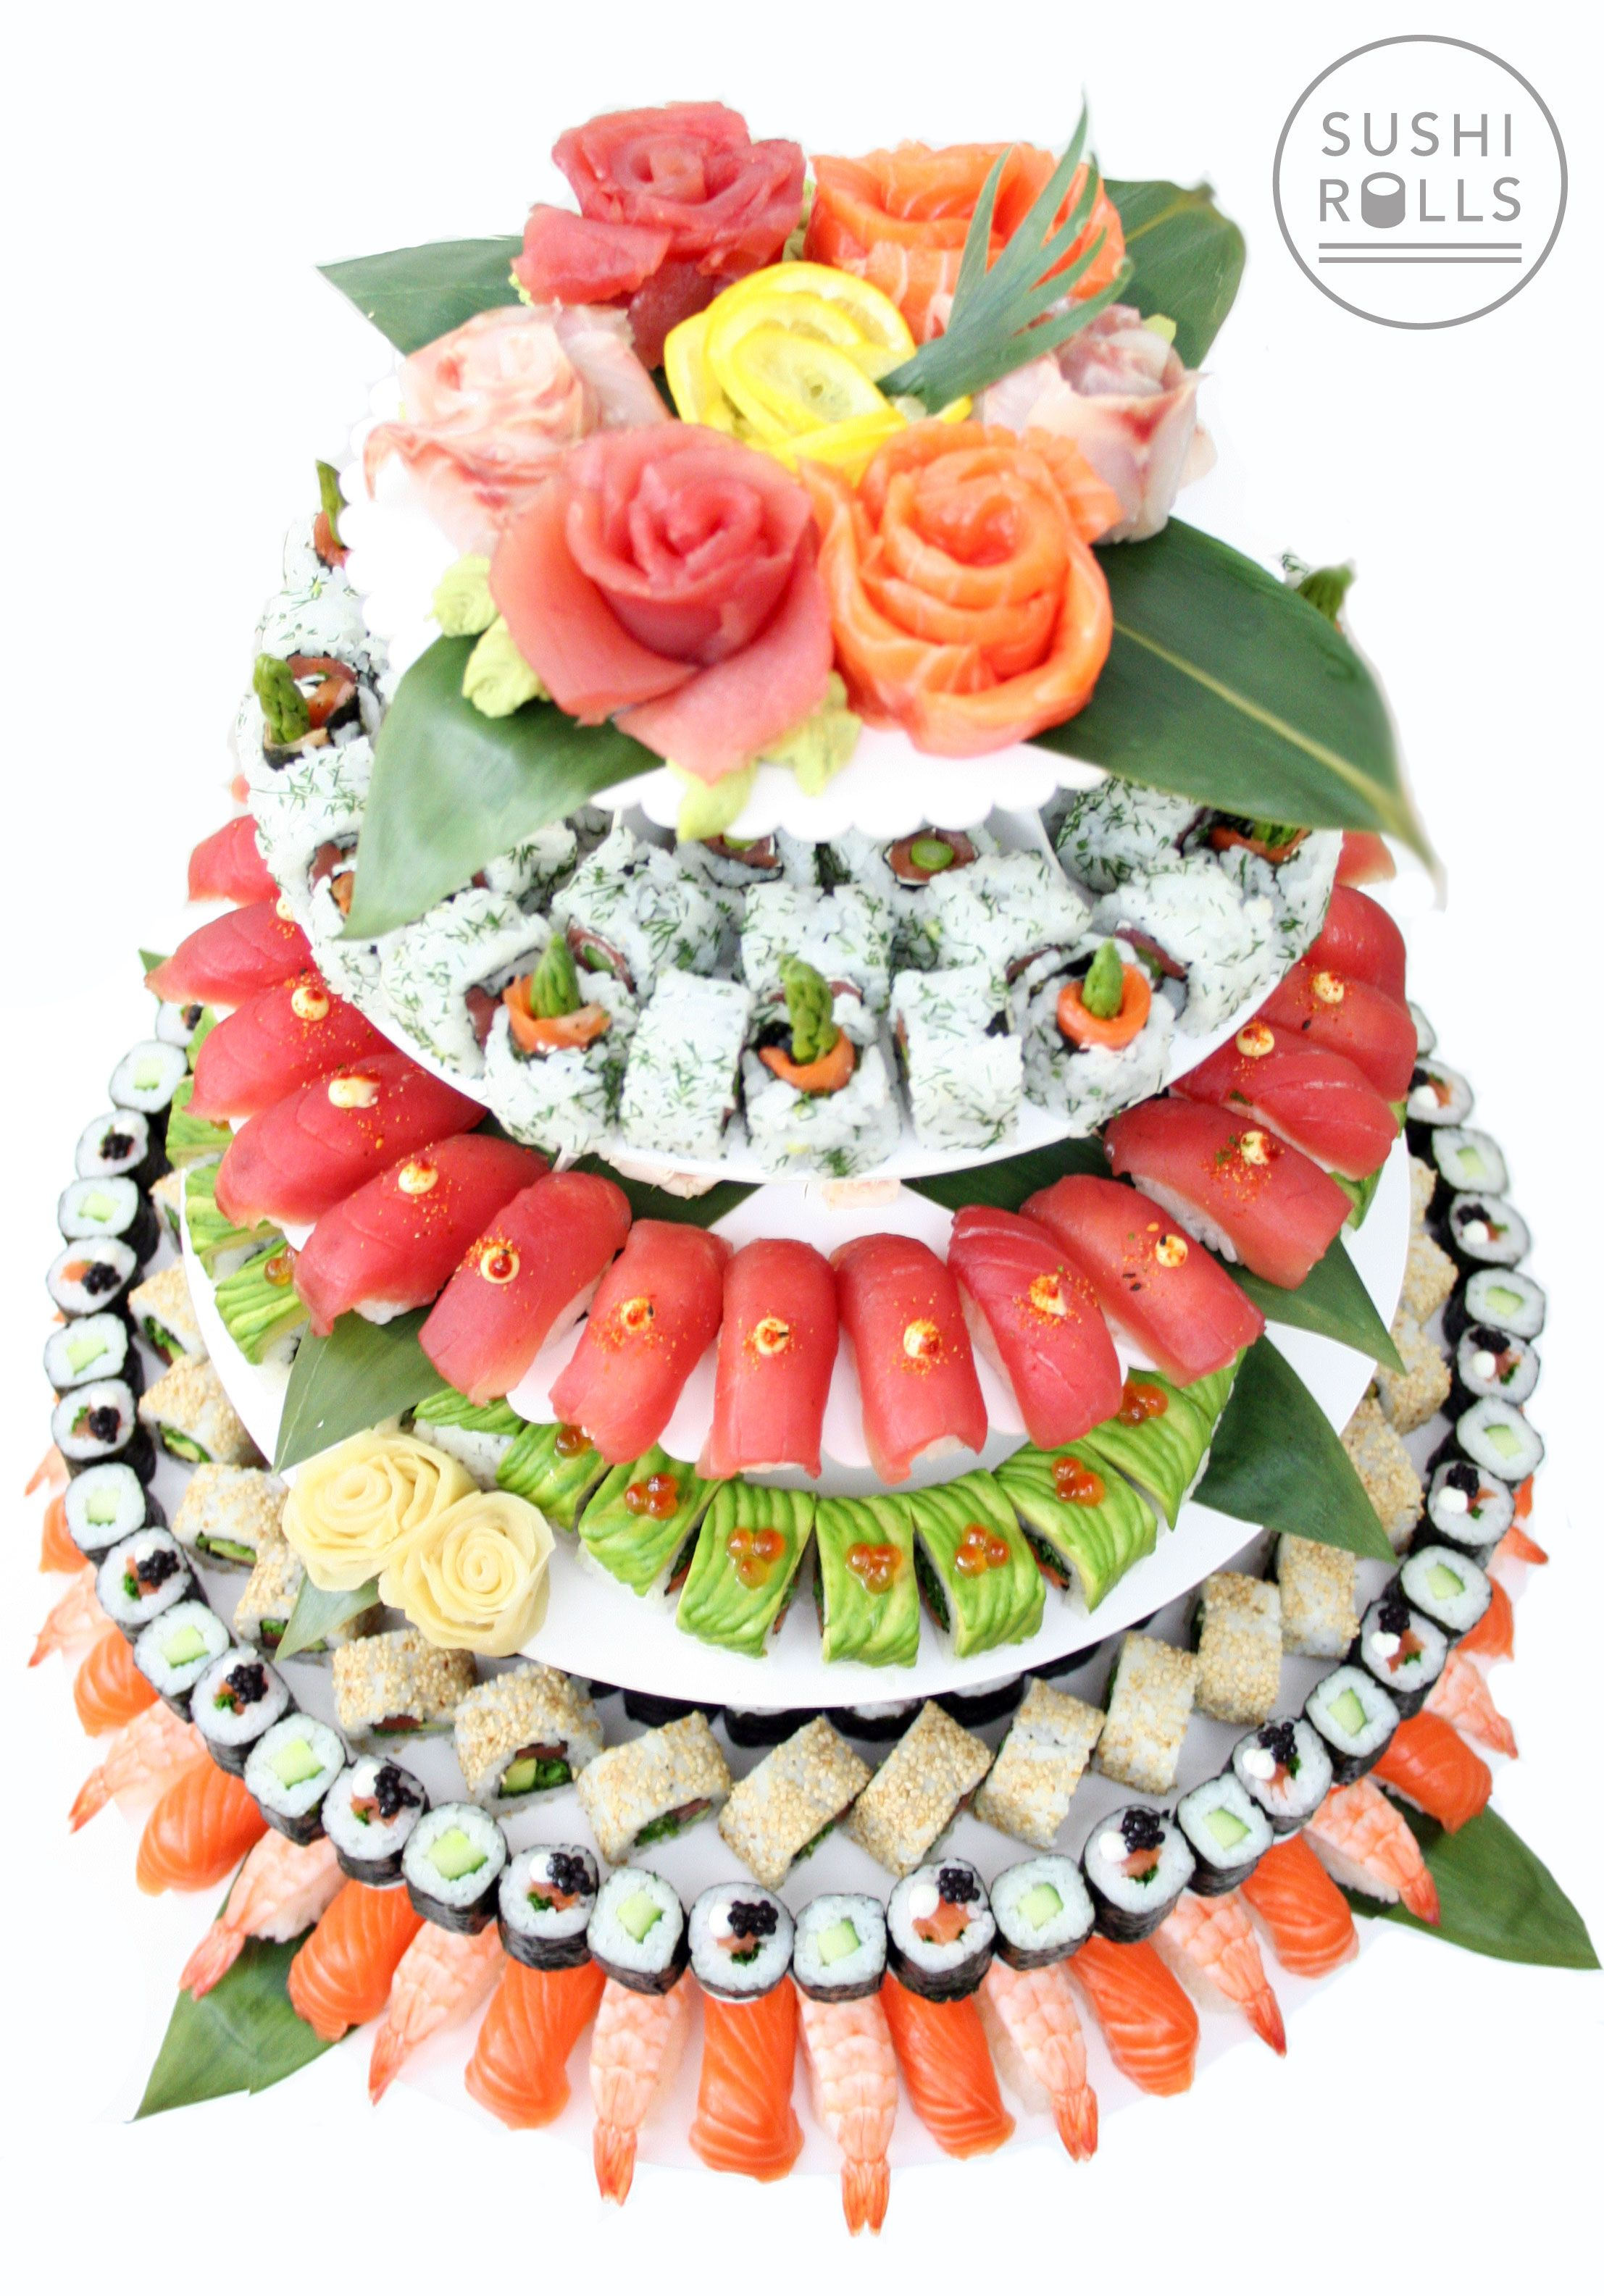 Sushi Wedding Cake From Sushirolls Co Uk A Sushi Catering Company